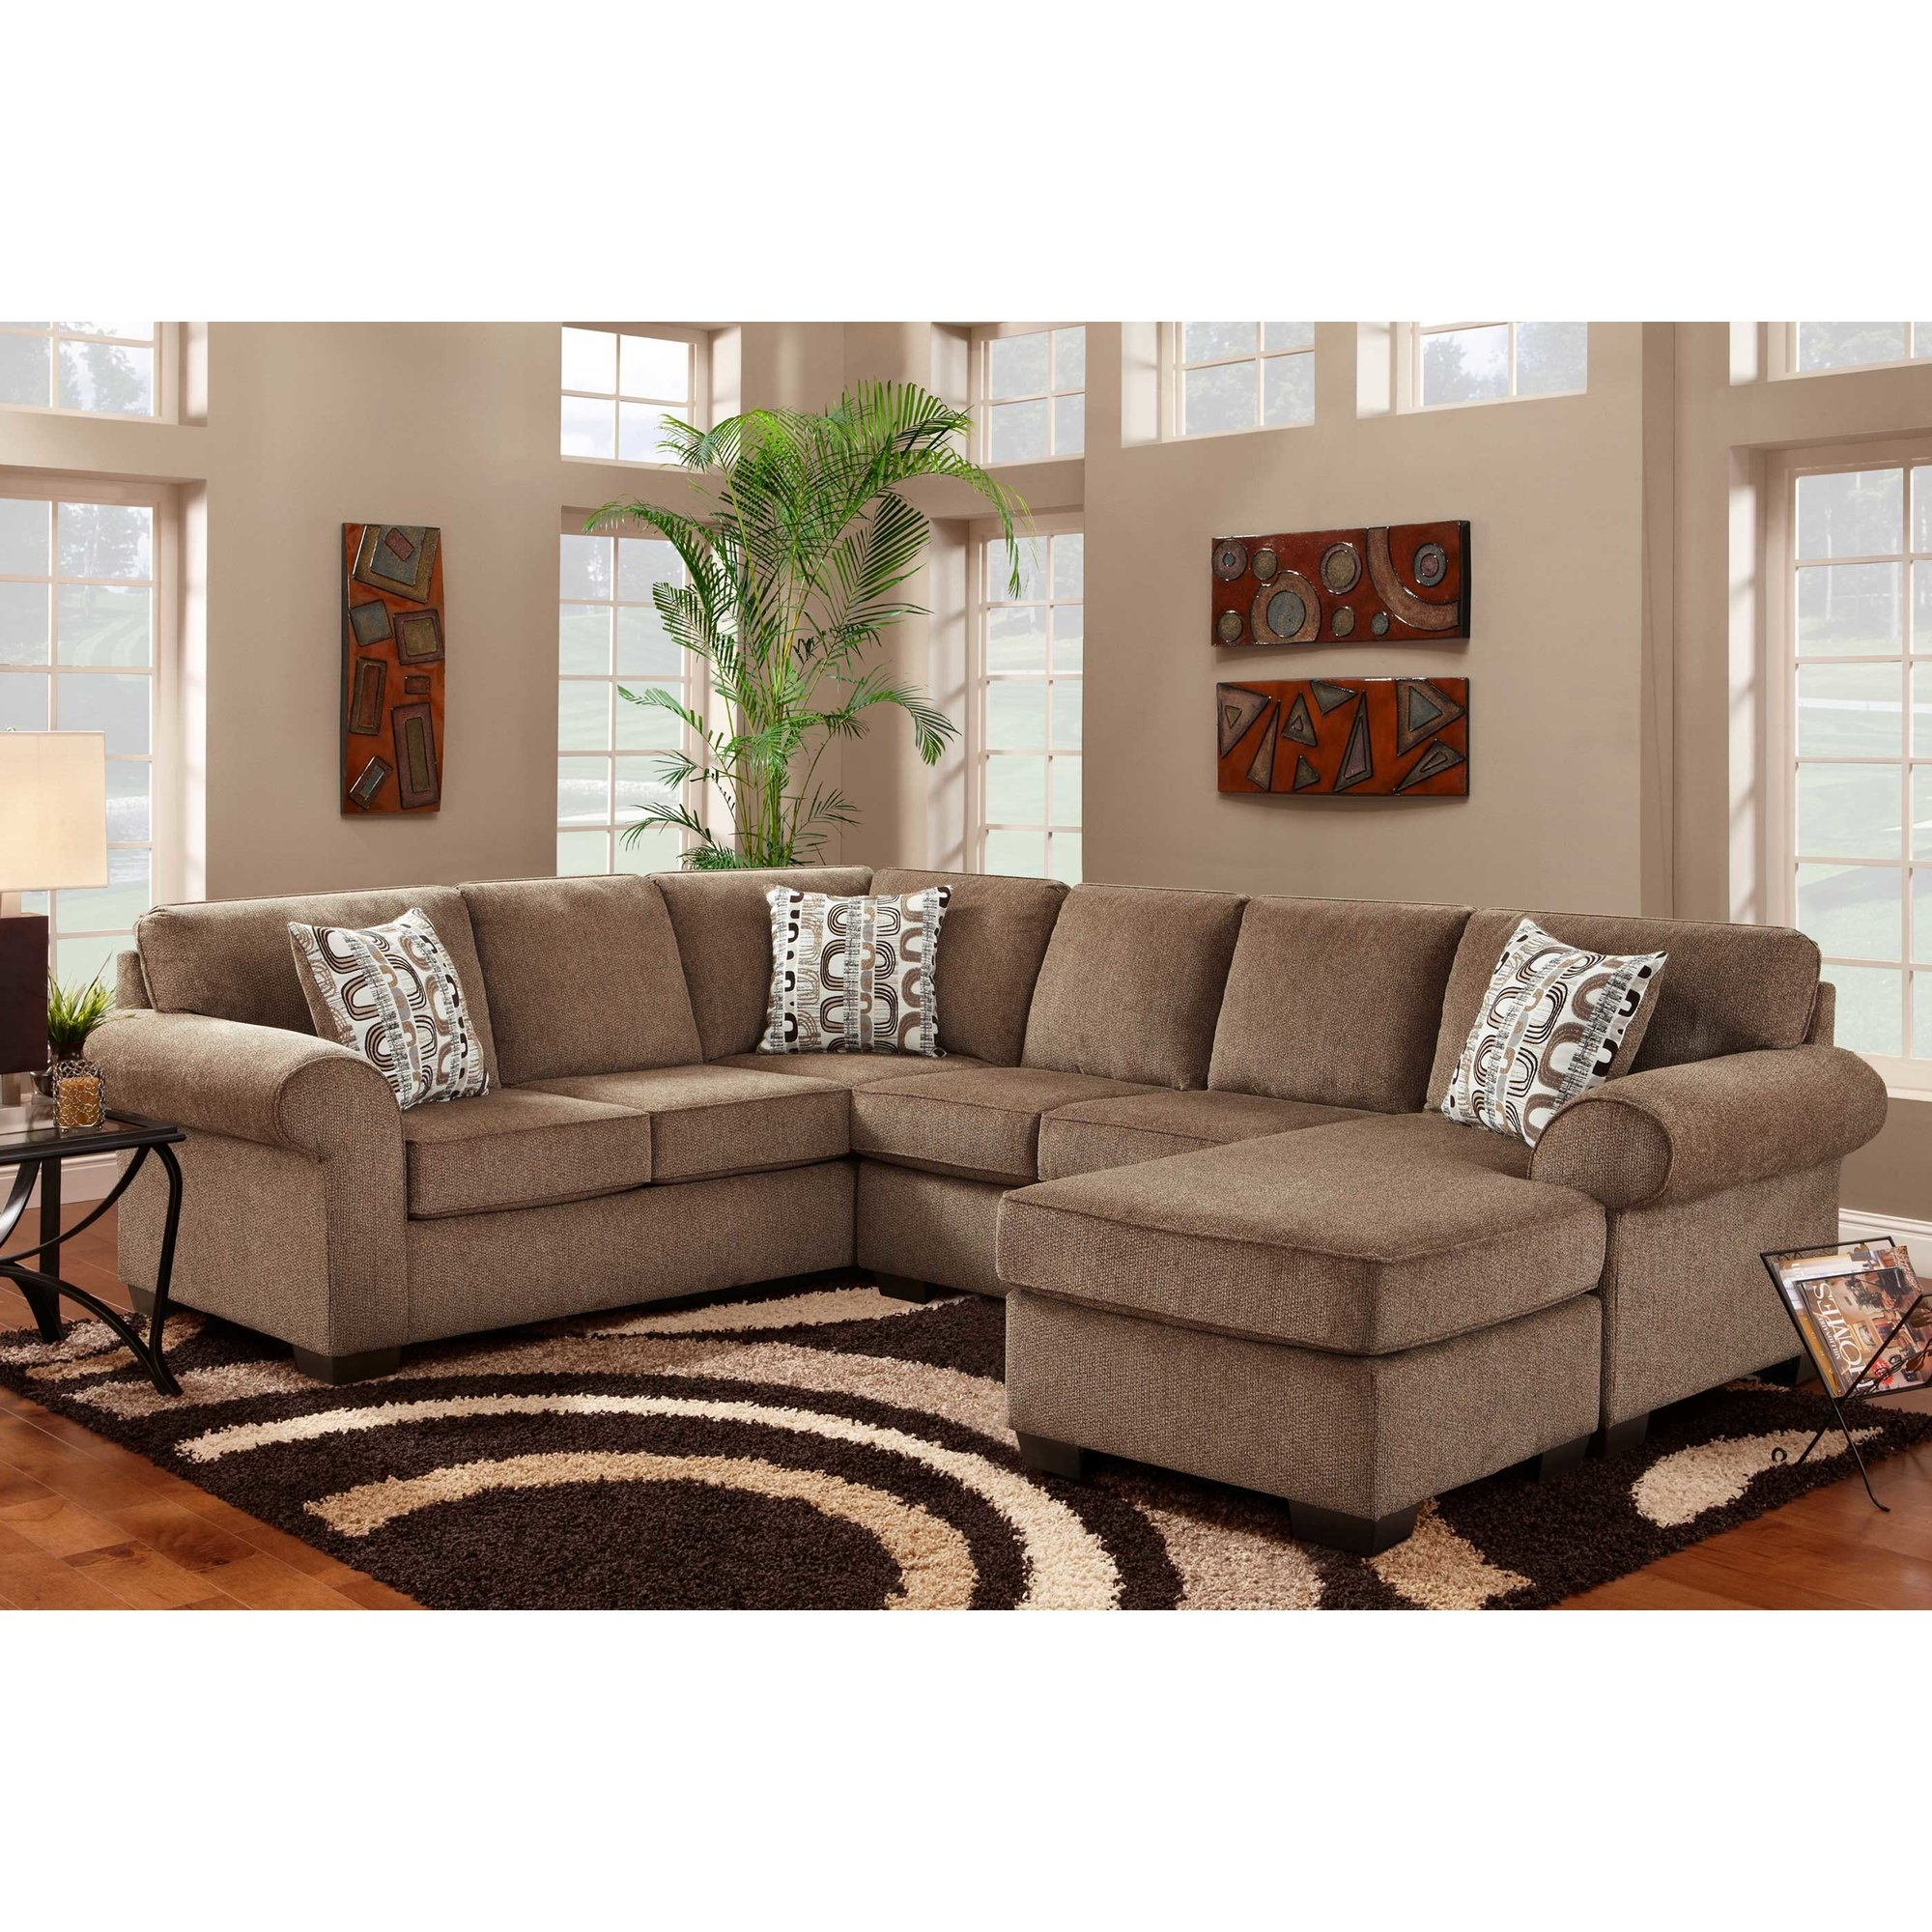 Chenille Sectional Sofas Youll Love Wayfair Intended For Chenille Sectional Sofas (View 4 of 15)